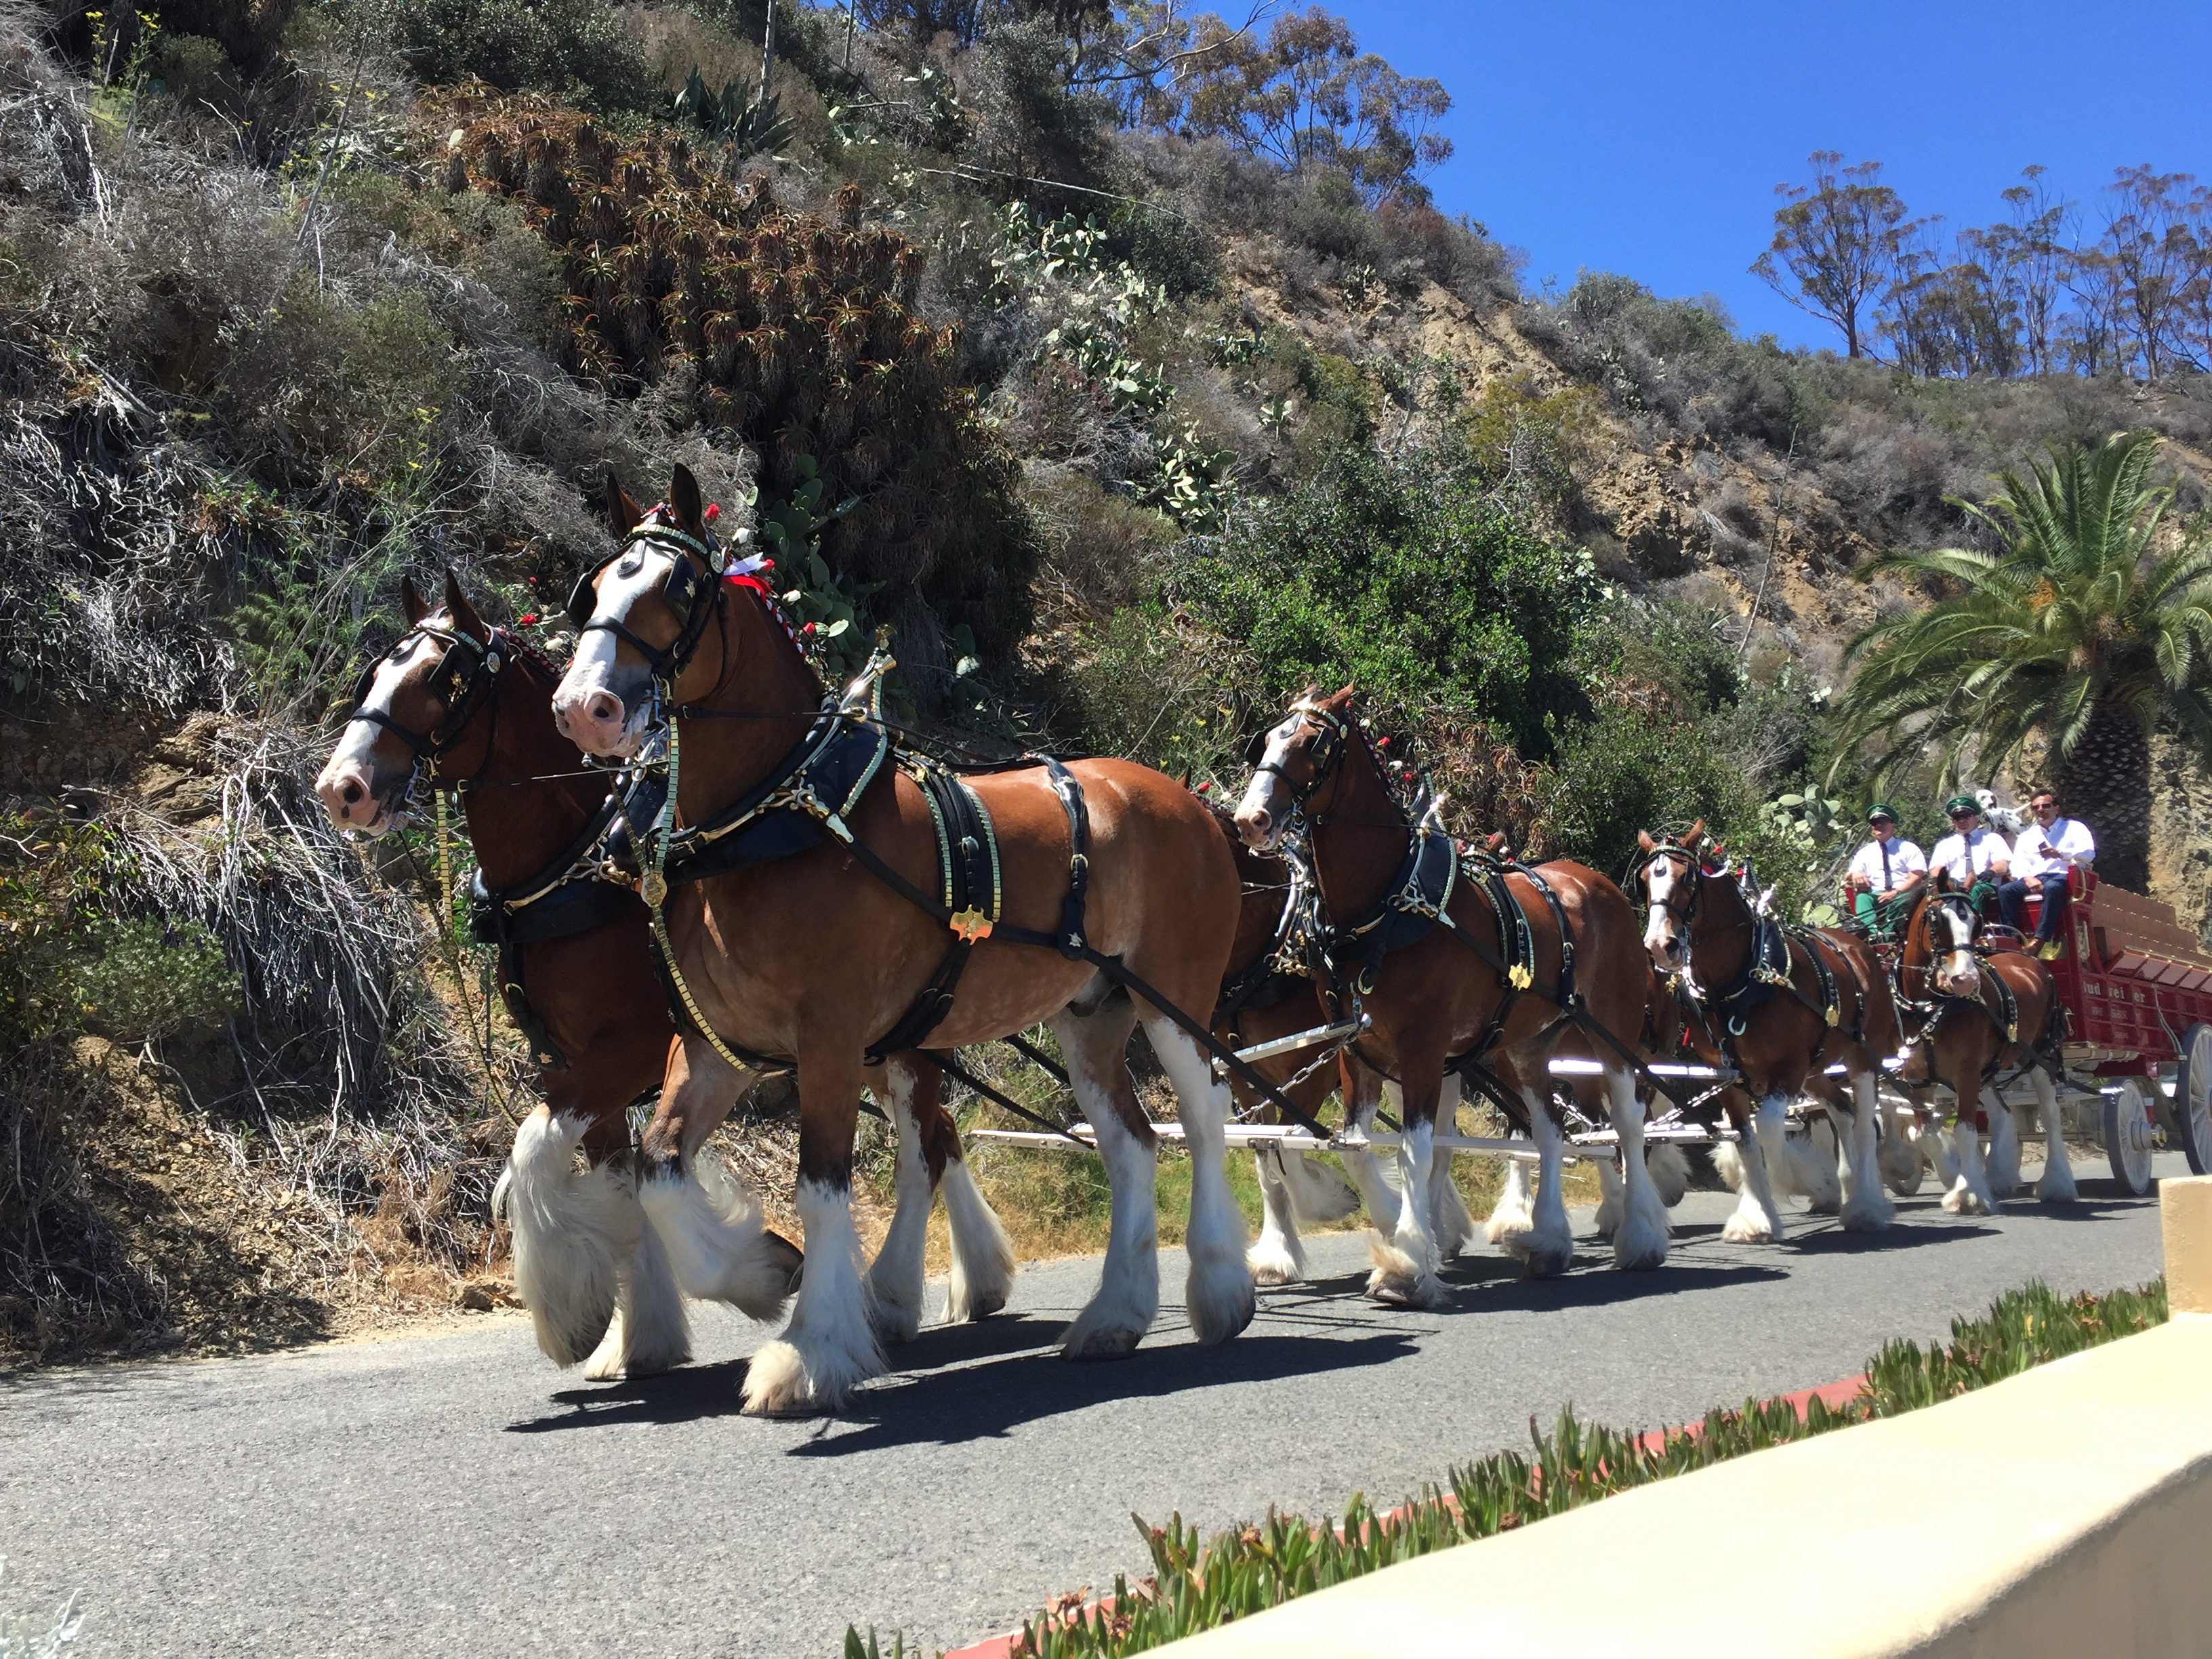 The Budweiser Clydesdales in Avalon, CA (Catalina Island) July 3, 2016. (Photo: Daniel Nee)